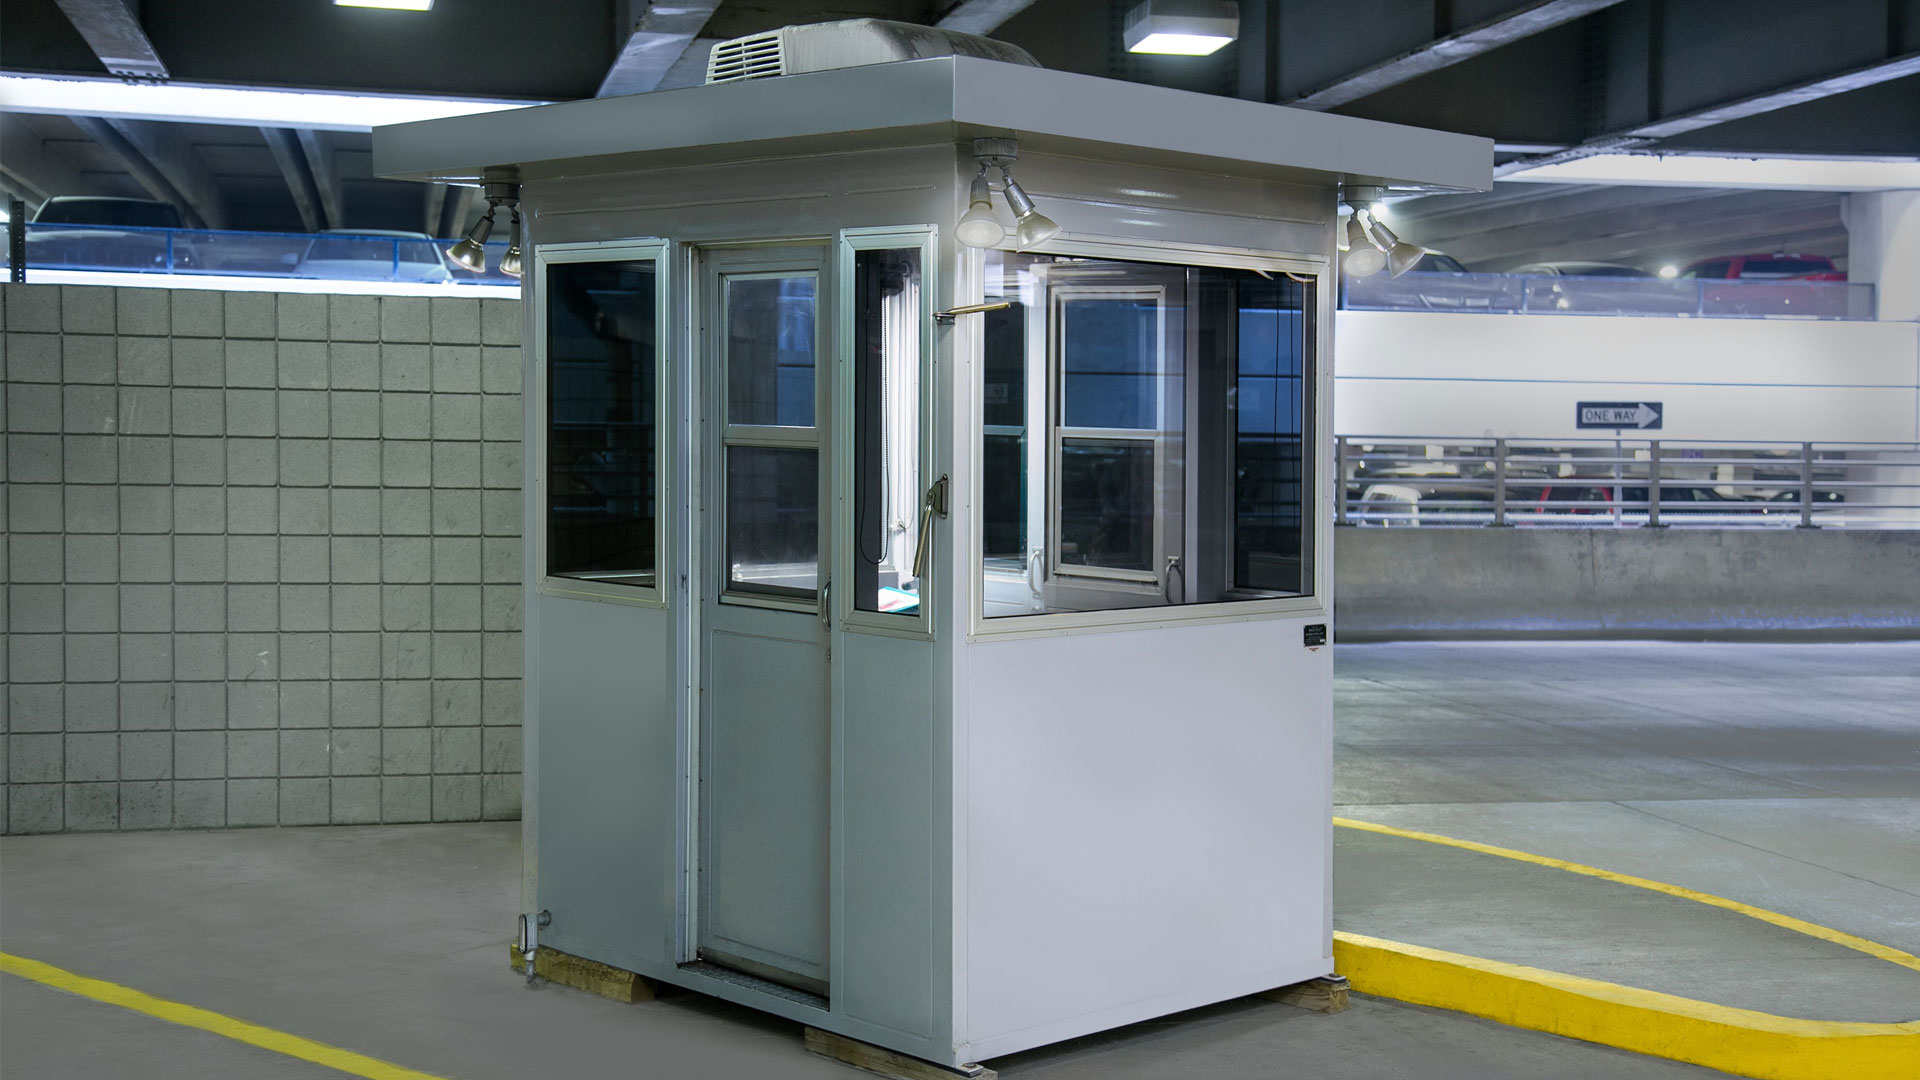 Guard Booth with Exterior Lighting 17-033